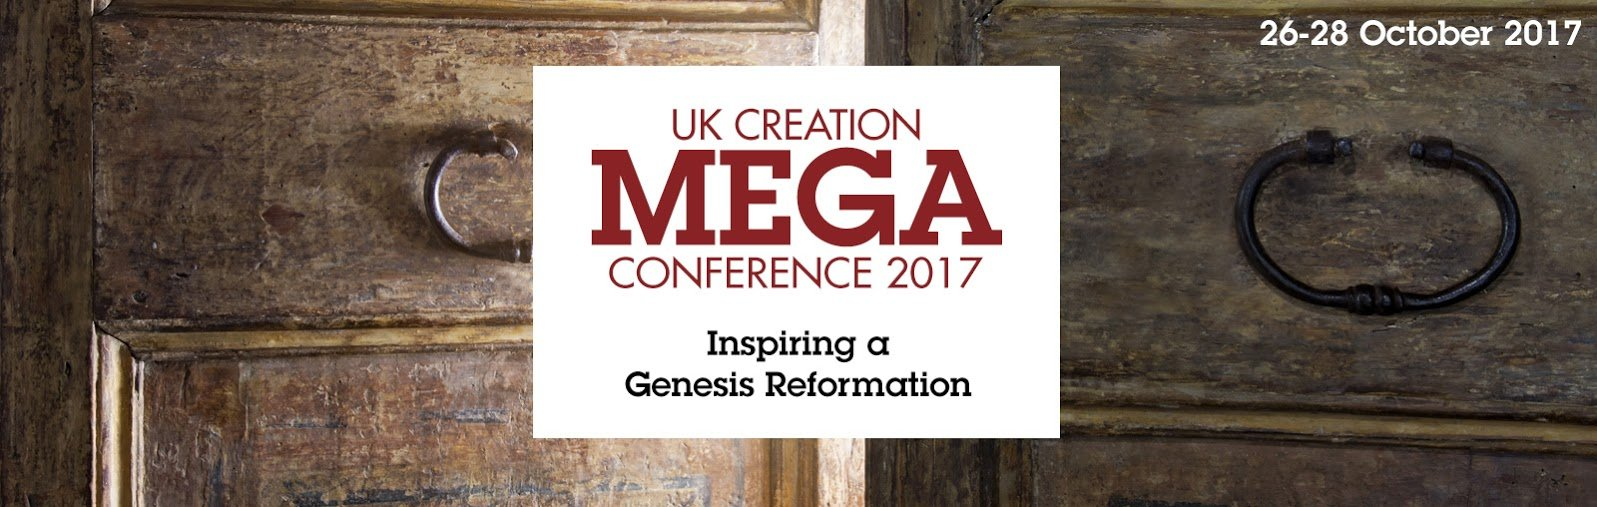 Mega Conference Combats Decline of Christianity in the UK